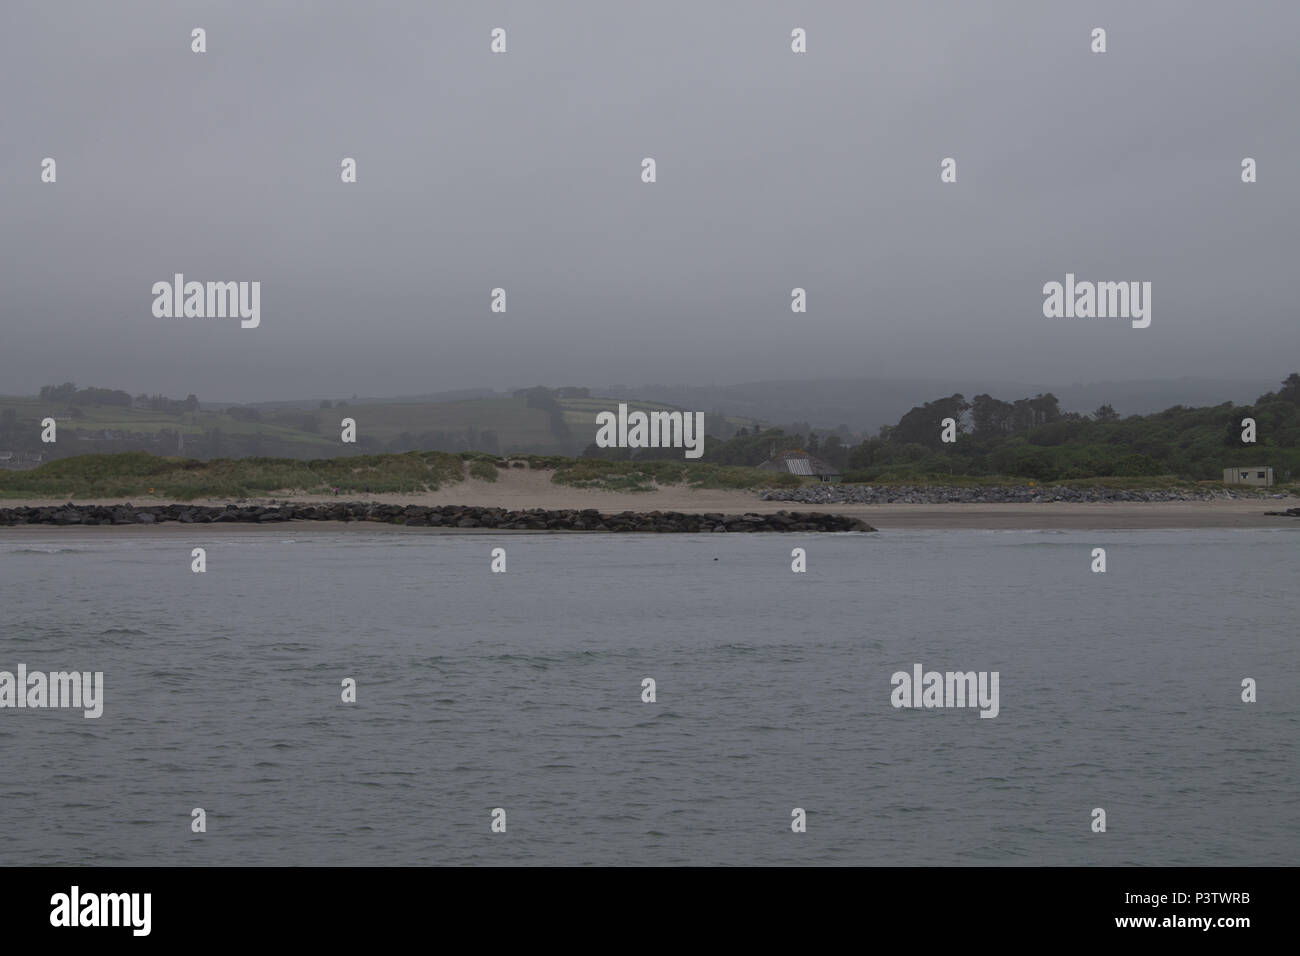 West Cork, Ireland. 19th June, 2018. A grey humid start to the day, with low cloud and mist covering the hilltops nearly down to sea level, with a promise of brighter weather later when the cloud starts to break up. Credit: aphperspective/Alamy Live News - Stock Image